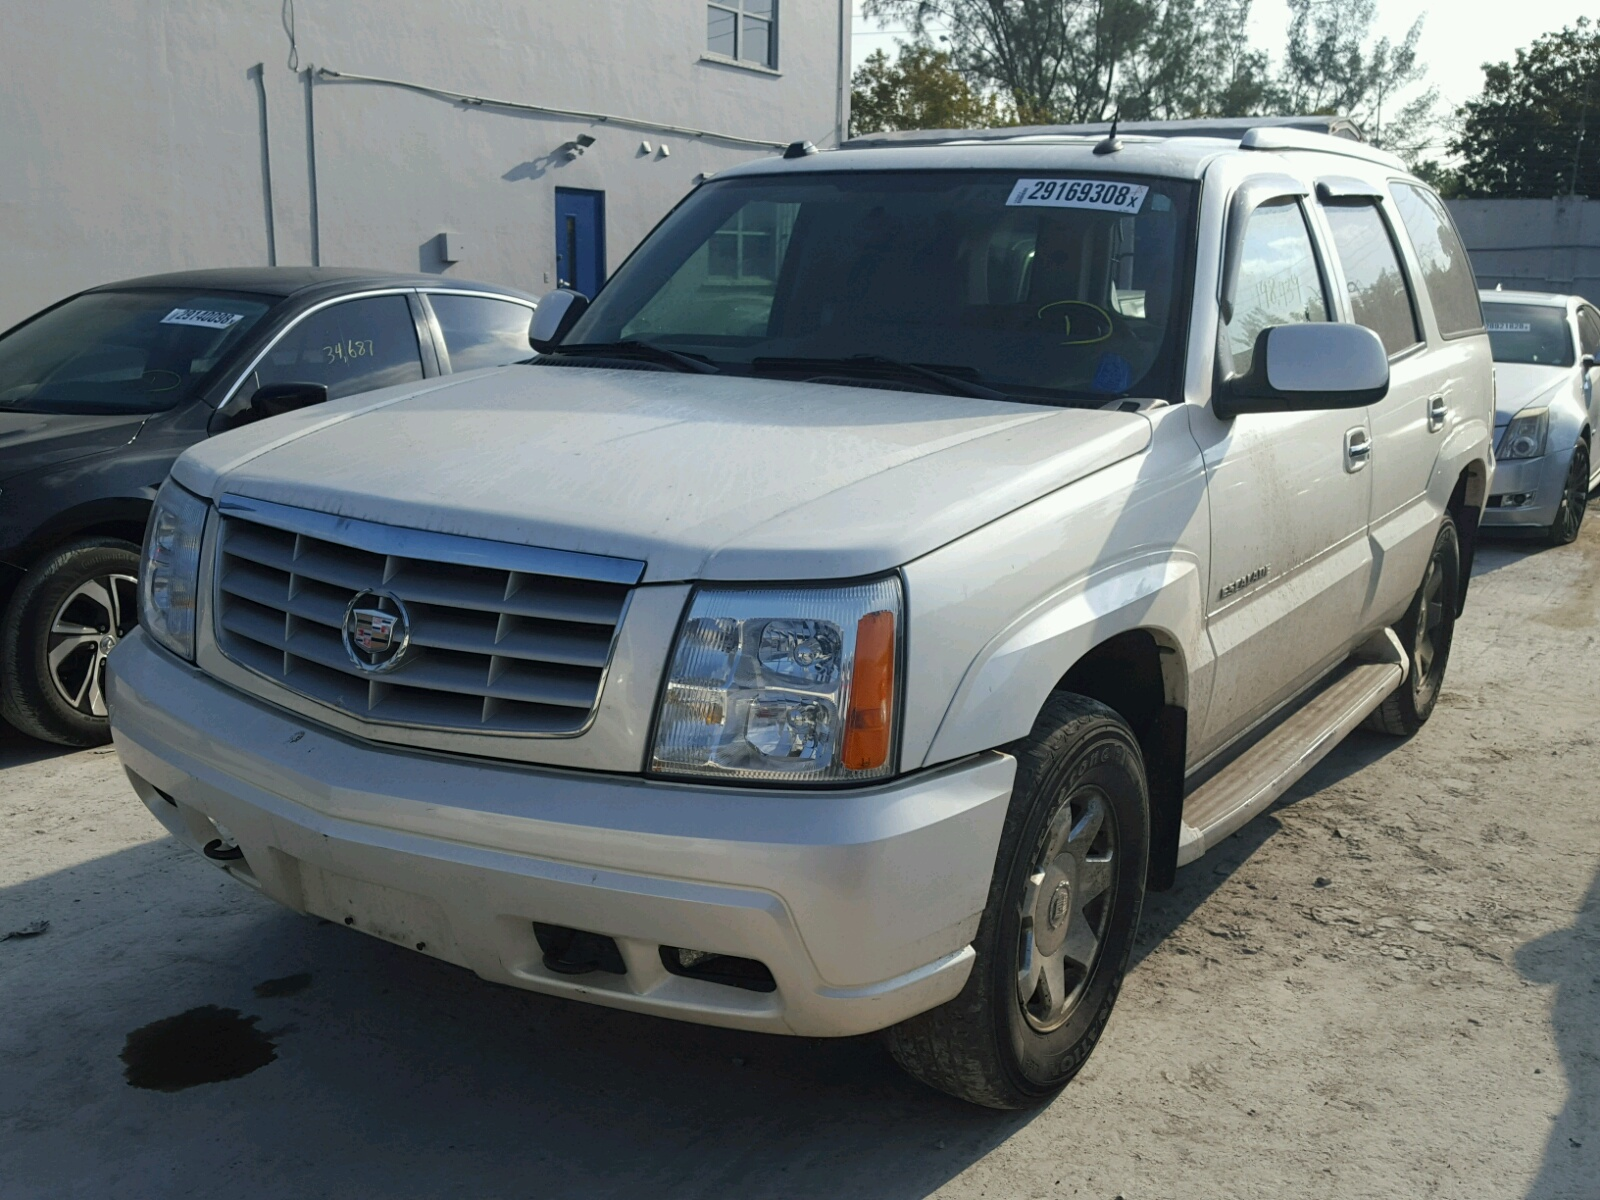 std cadillac awd dr sale for cargurus cars overview escalade suv pic